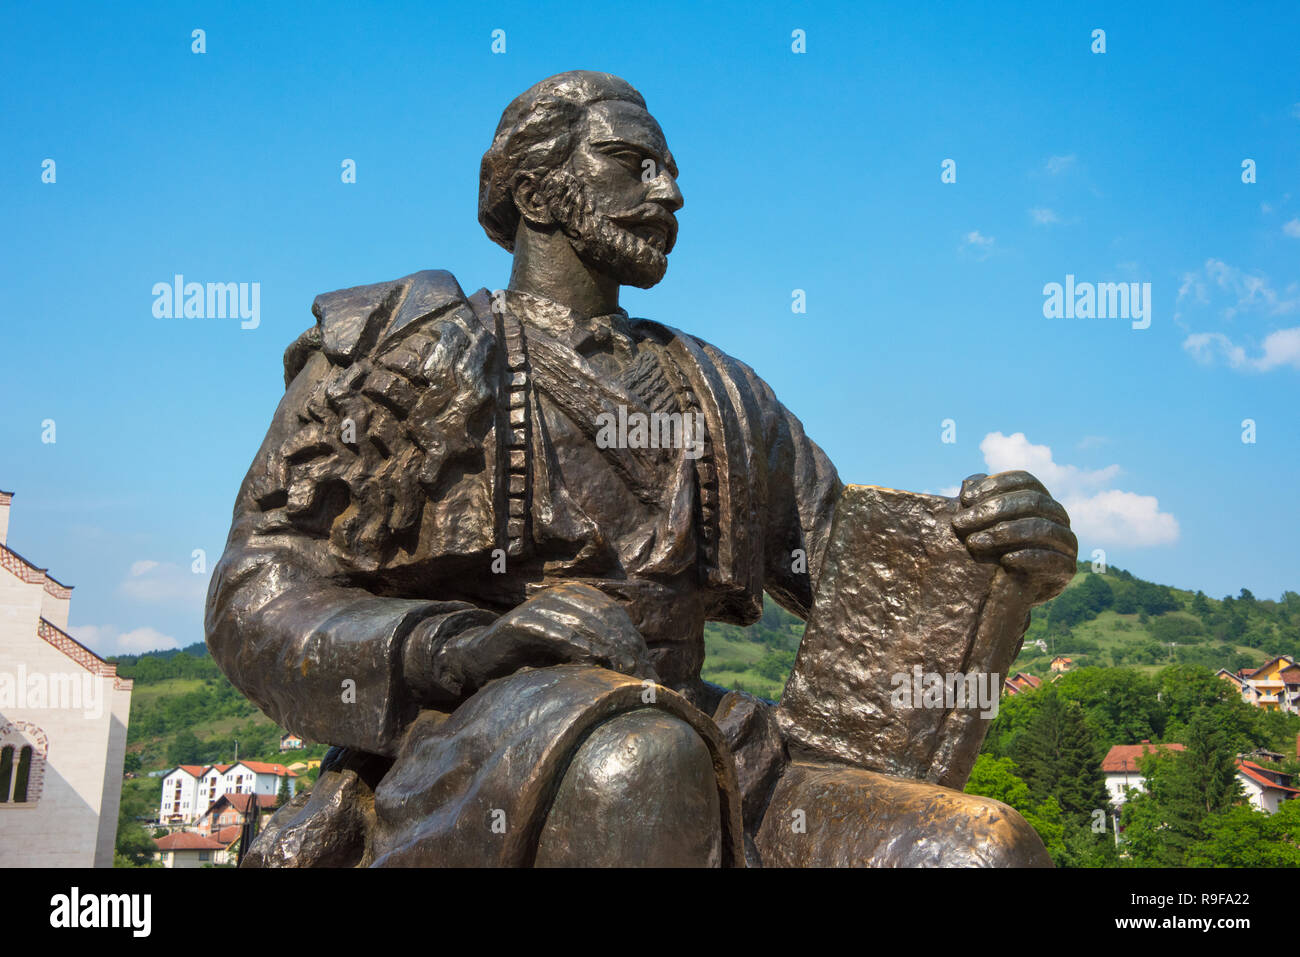 Statue of Ivo Andric, Andricgrad (also known as Andric's town or Stone town) dedicated to the famous writer, Ivo Andric, Visegrad, Bosnia and Herzegov - Stock Image